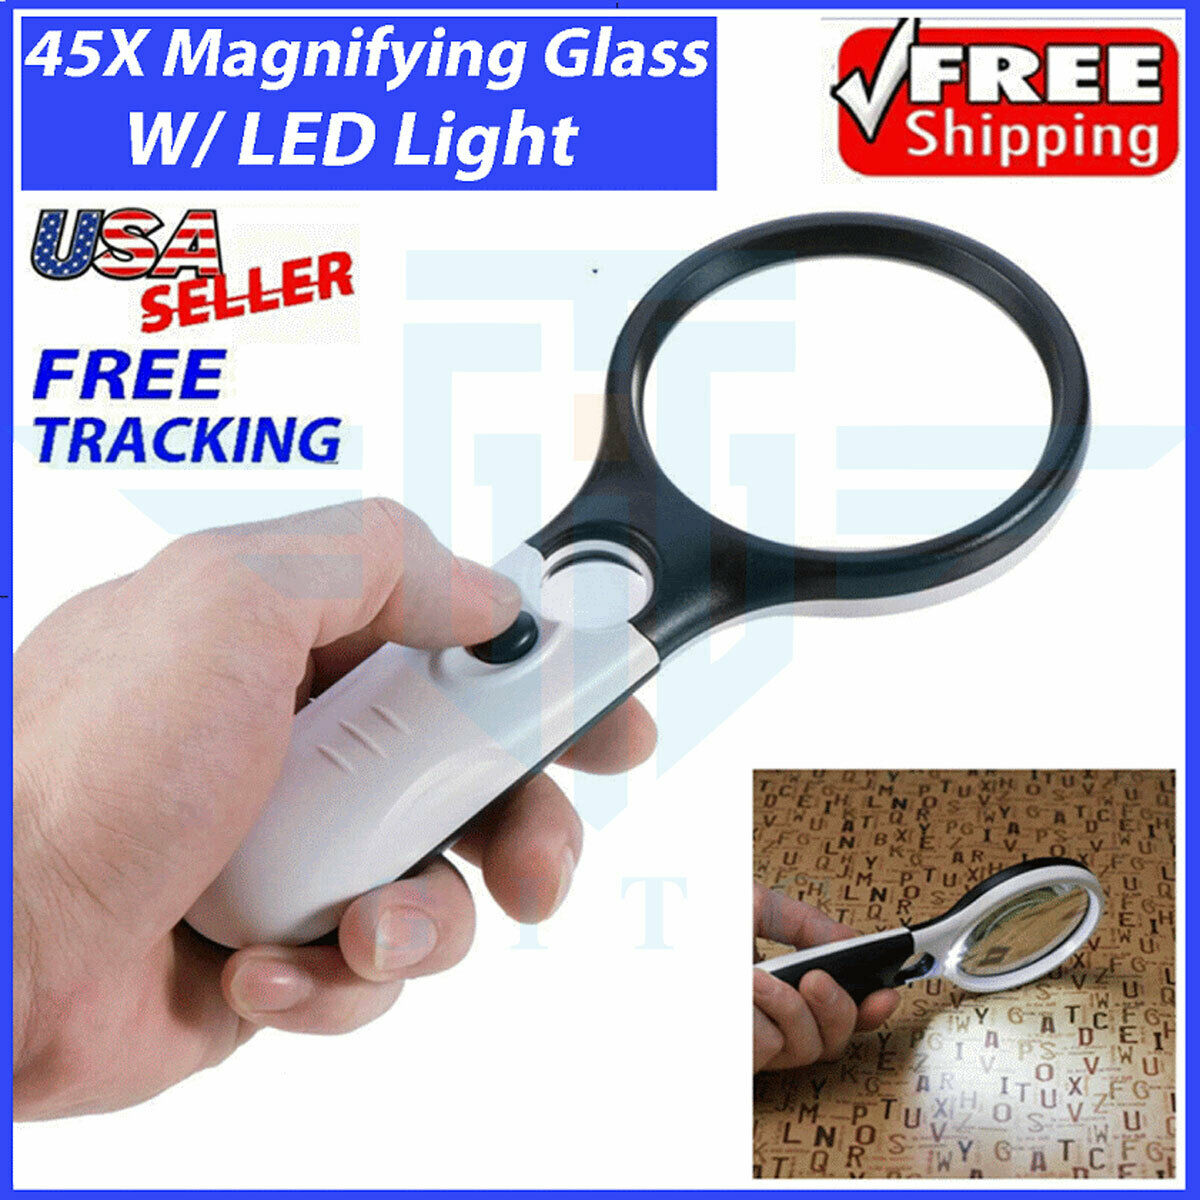 45X Magnifying Glass Handheld Magnifier 3 LED Light Reading Lens Jewelry Loupe Jewelry & Watches